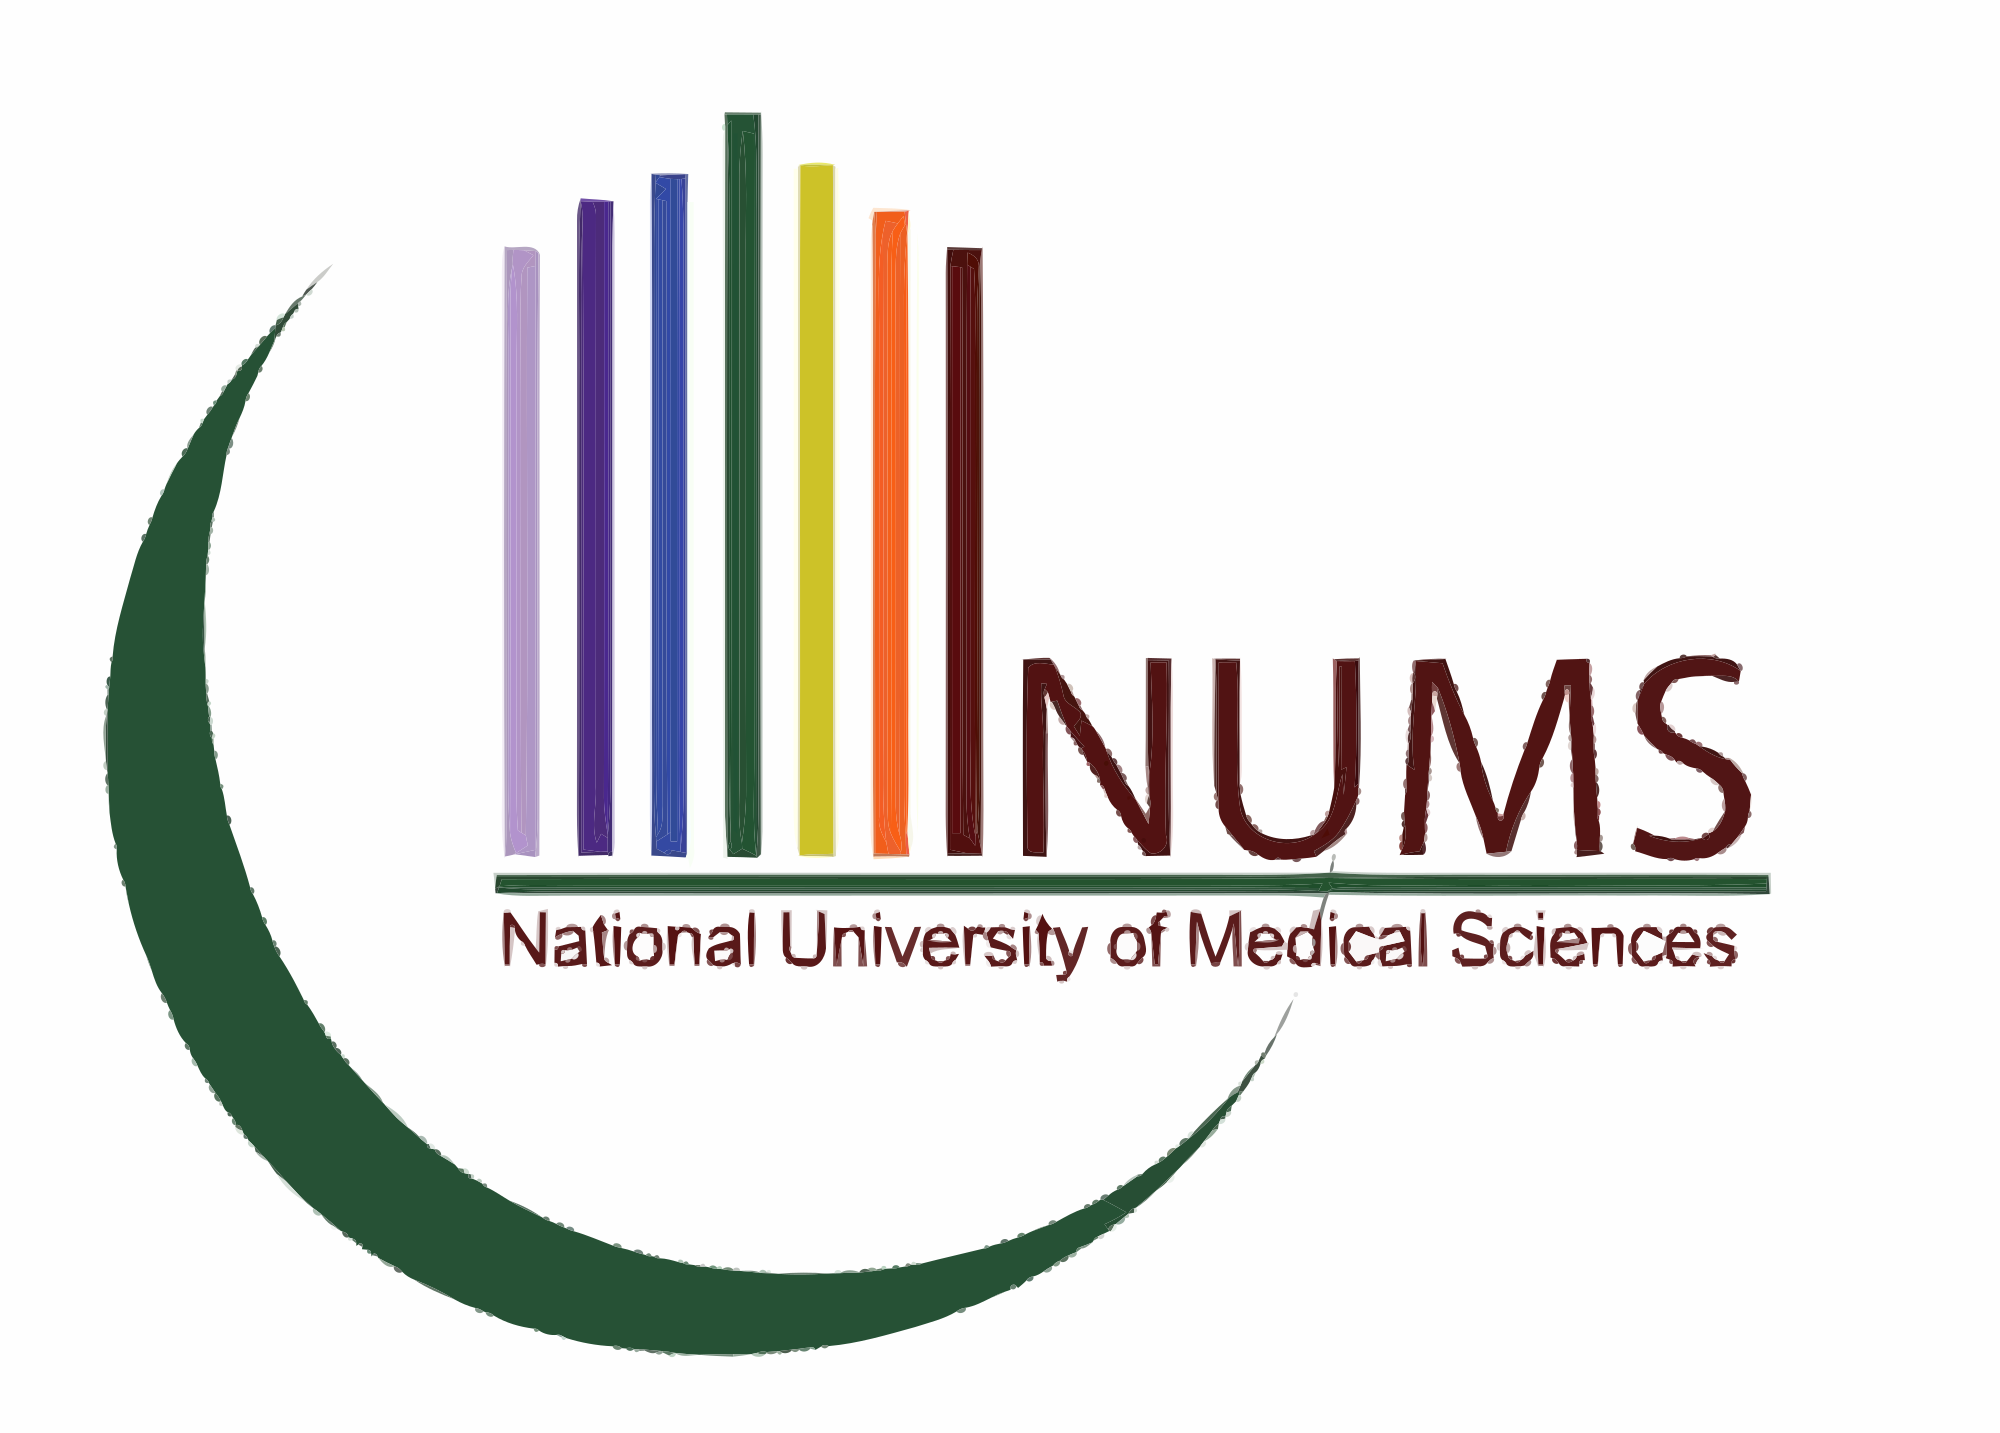 NUMS Merit List 2018 For MBBS, BDS 1st, 2nd, 3rd Online